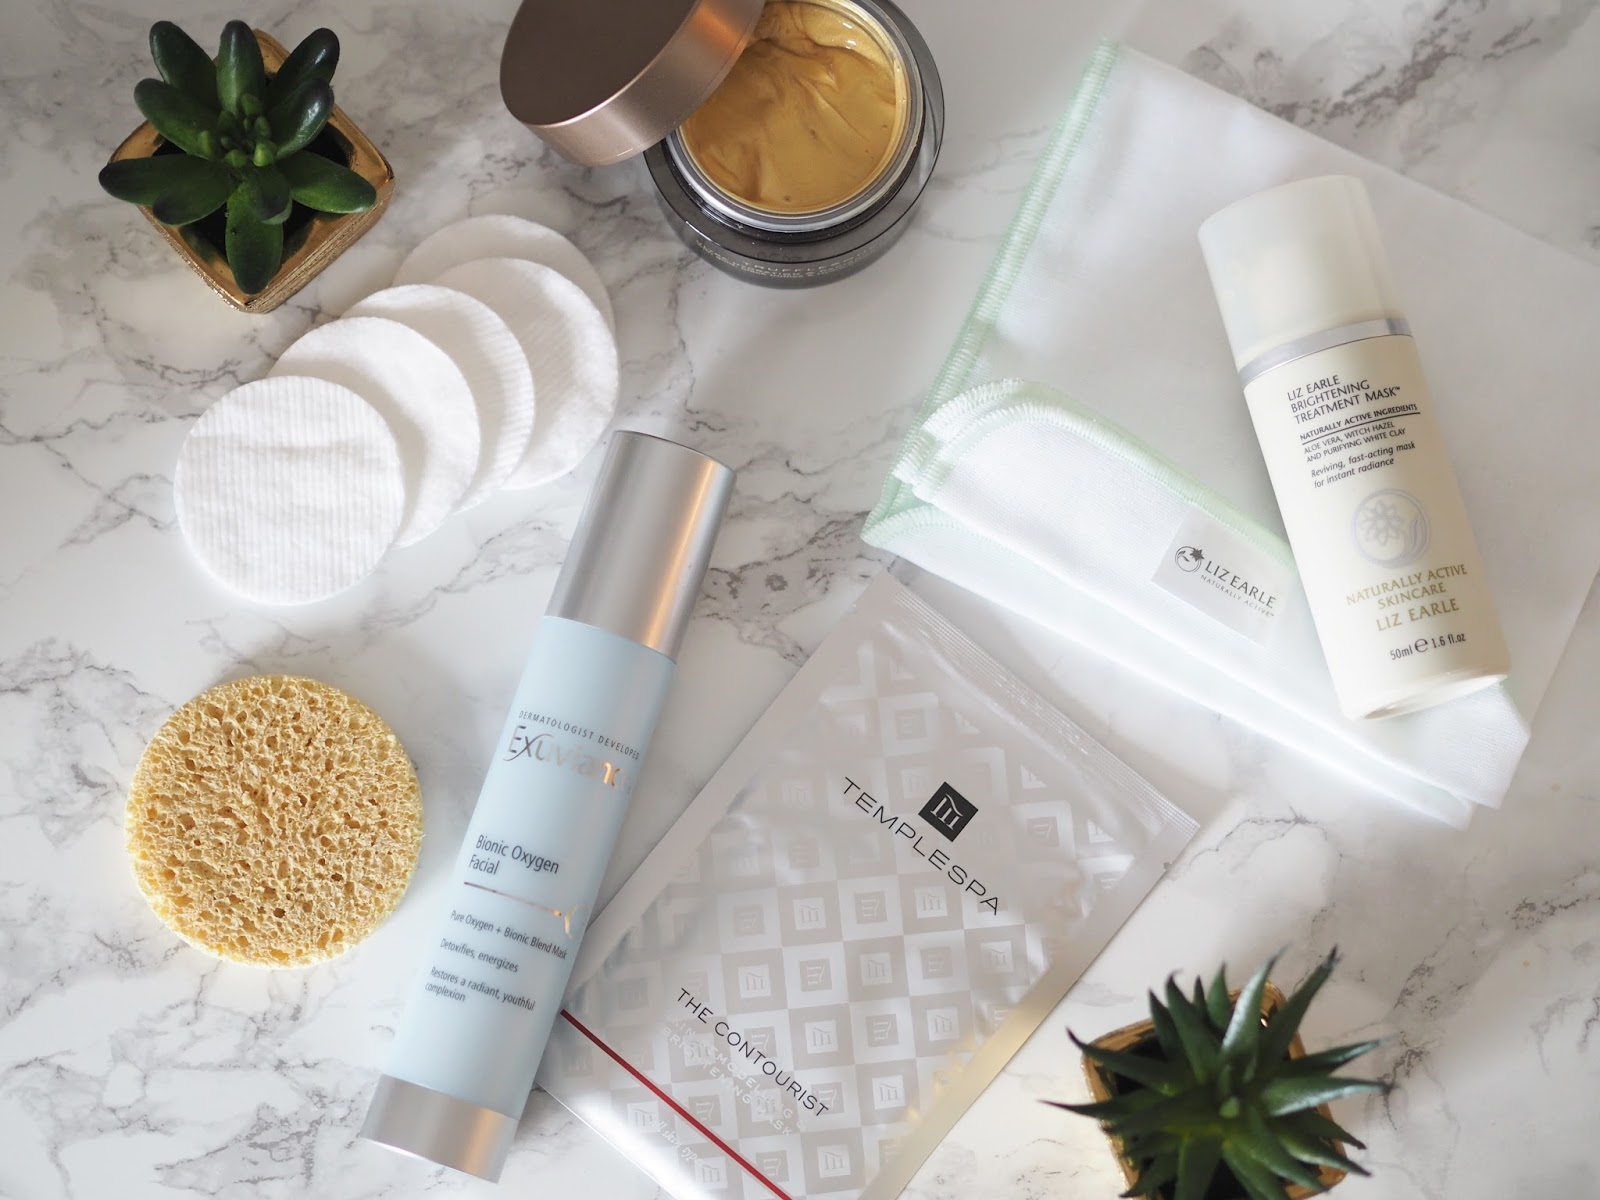 beauty \ face mask \ Temple Spa \ Trufflesque \ The Contourist review \ Liz Earle \ Exuviance review \ skincare \ Priceless Life of Mine \ Over 40 lifestyle blog